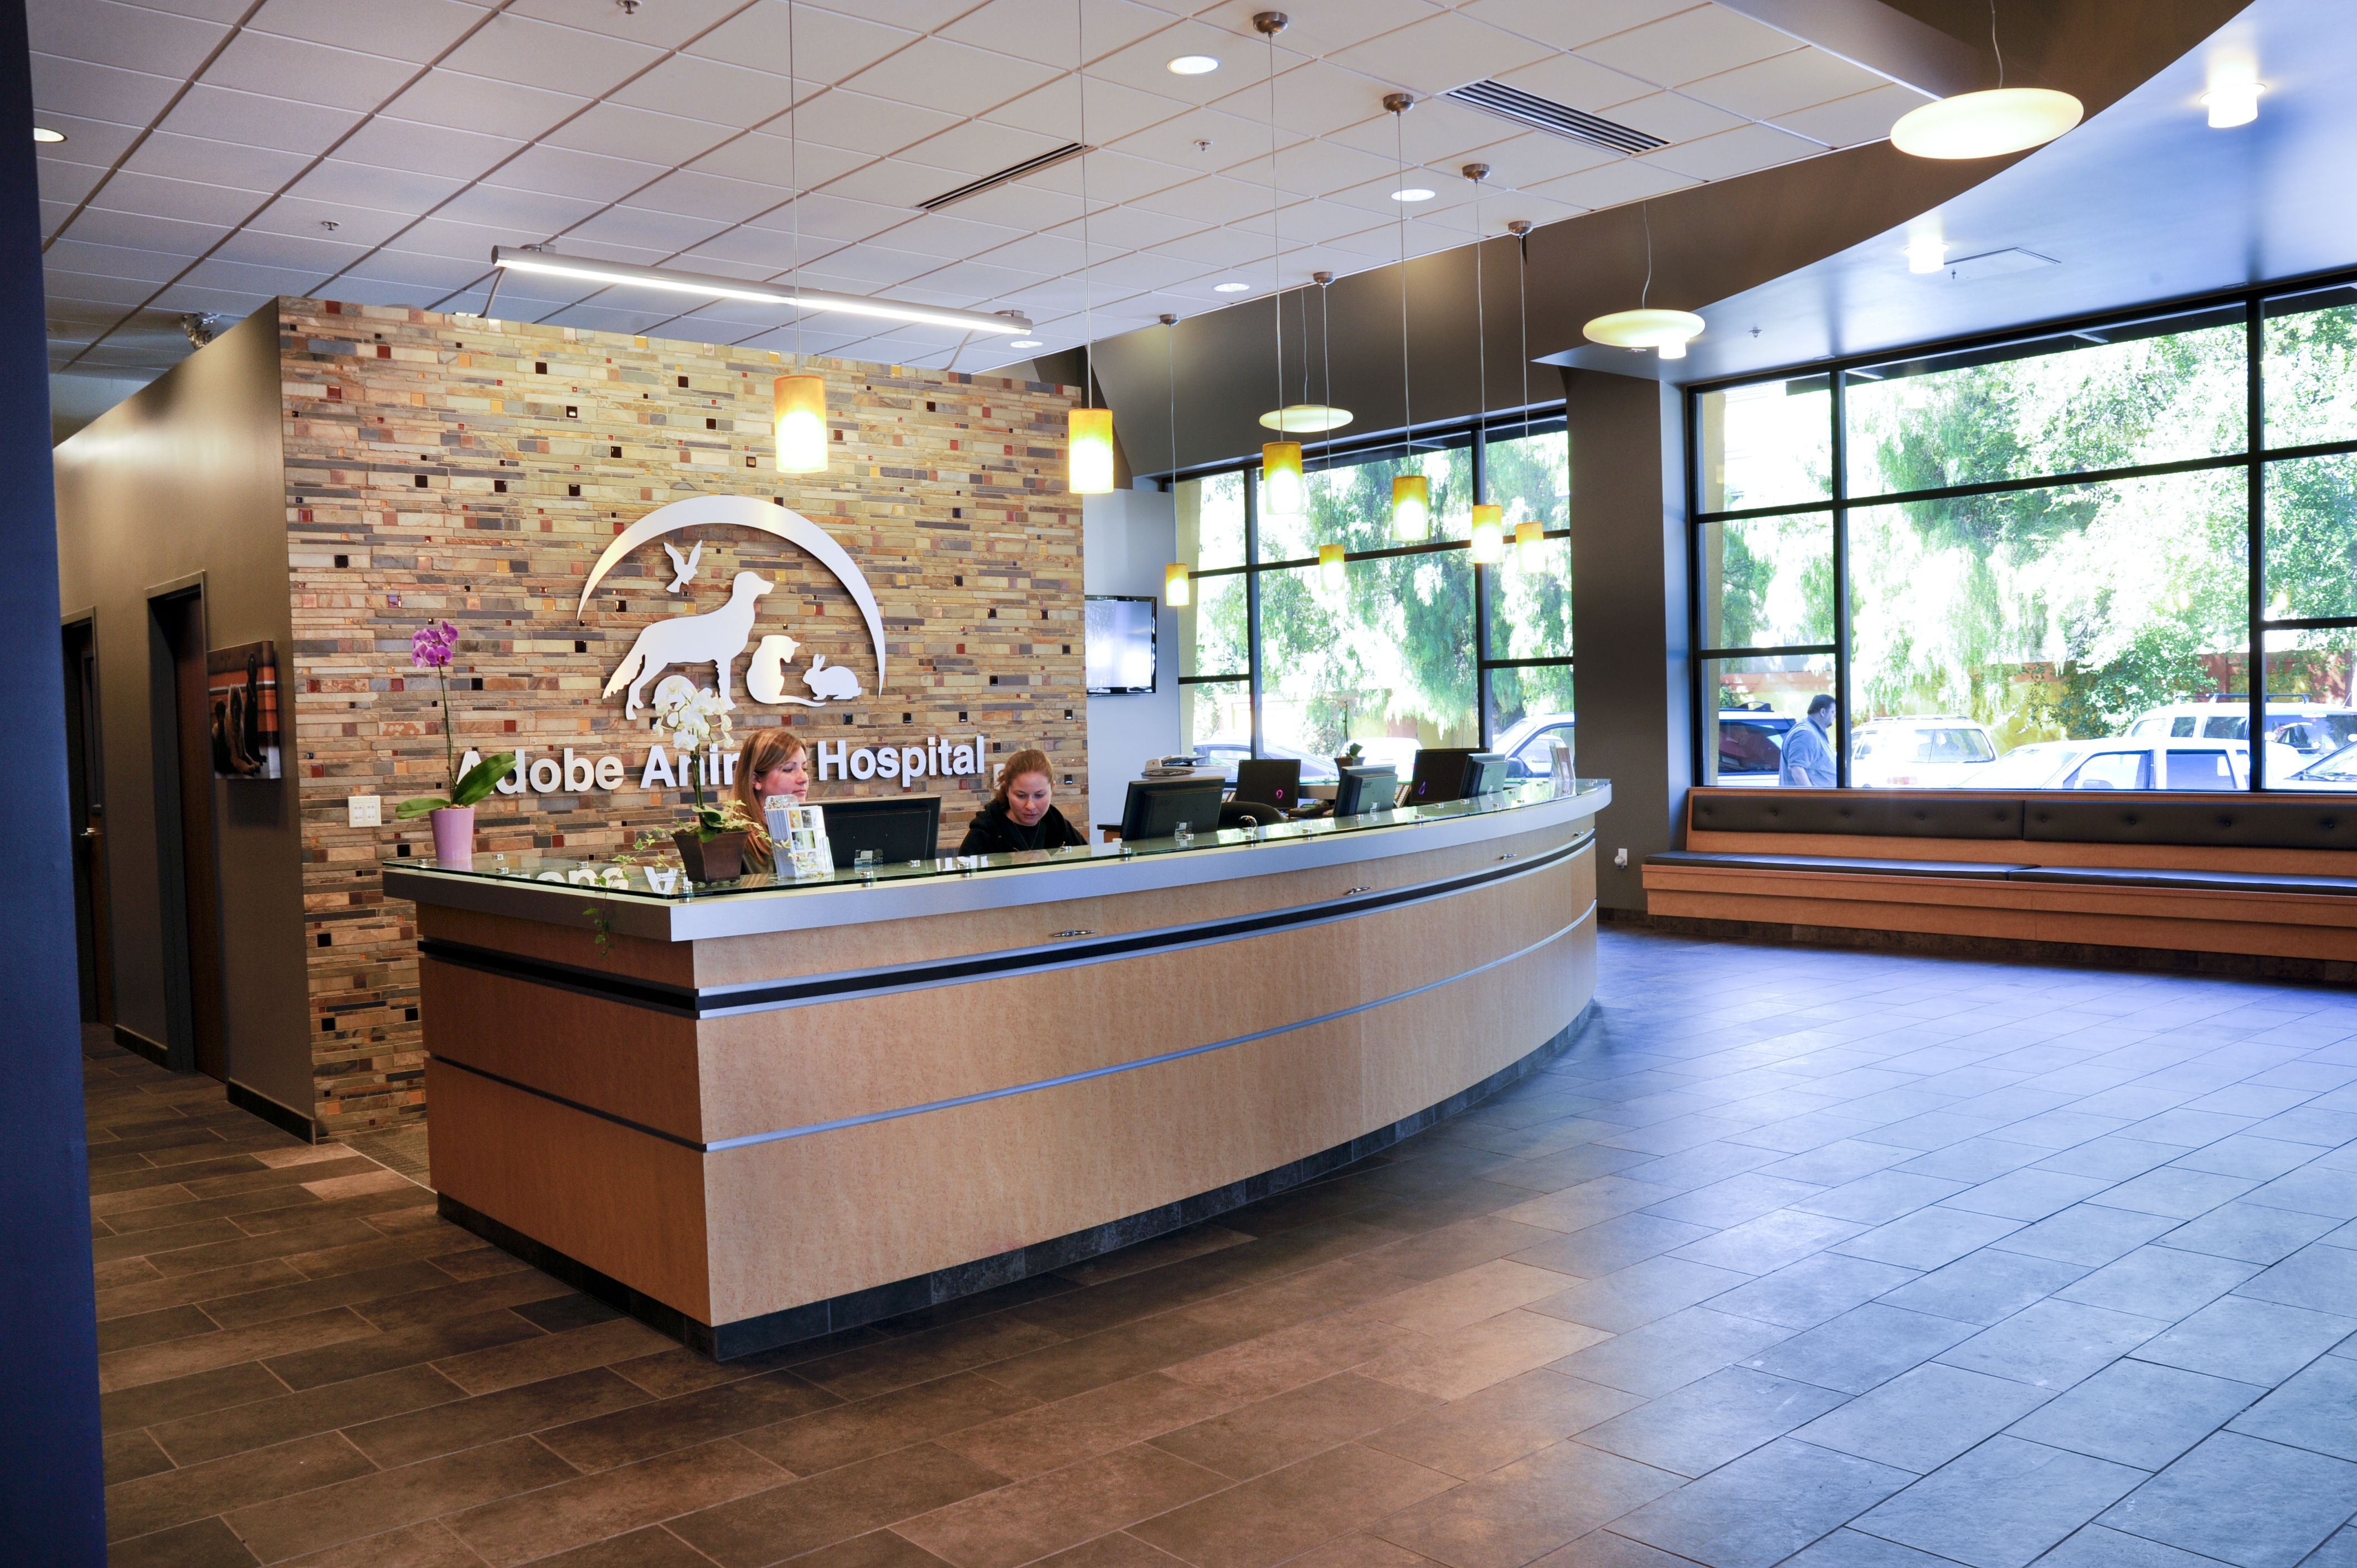 veterinary hospital design ideas images